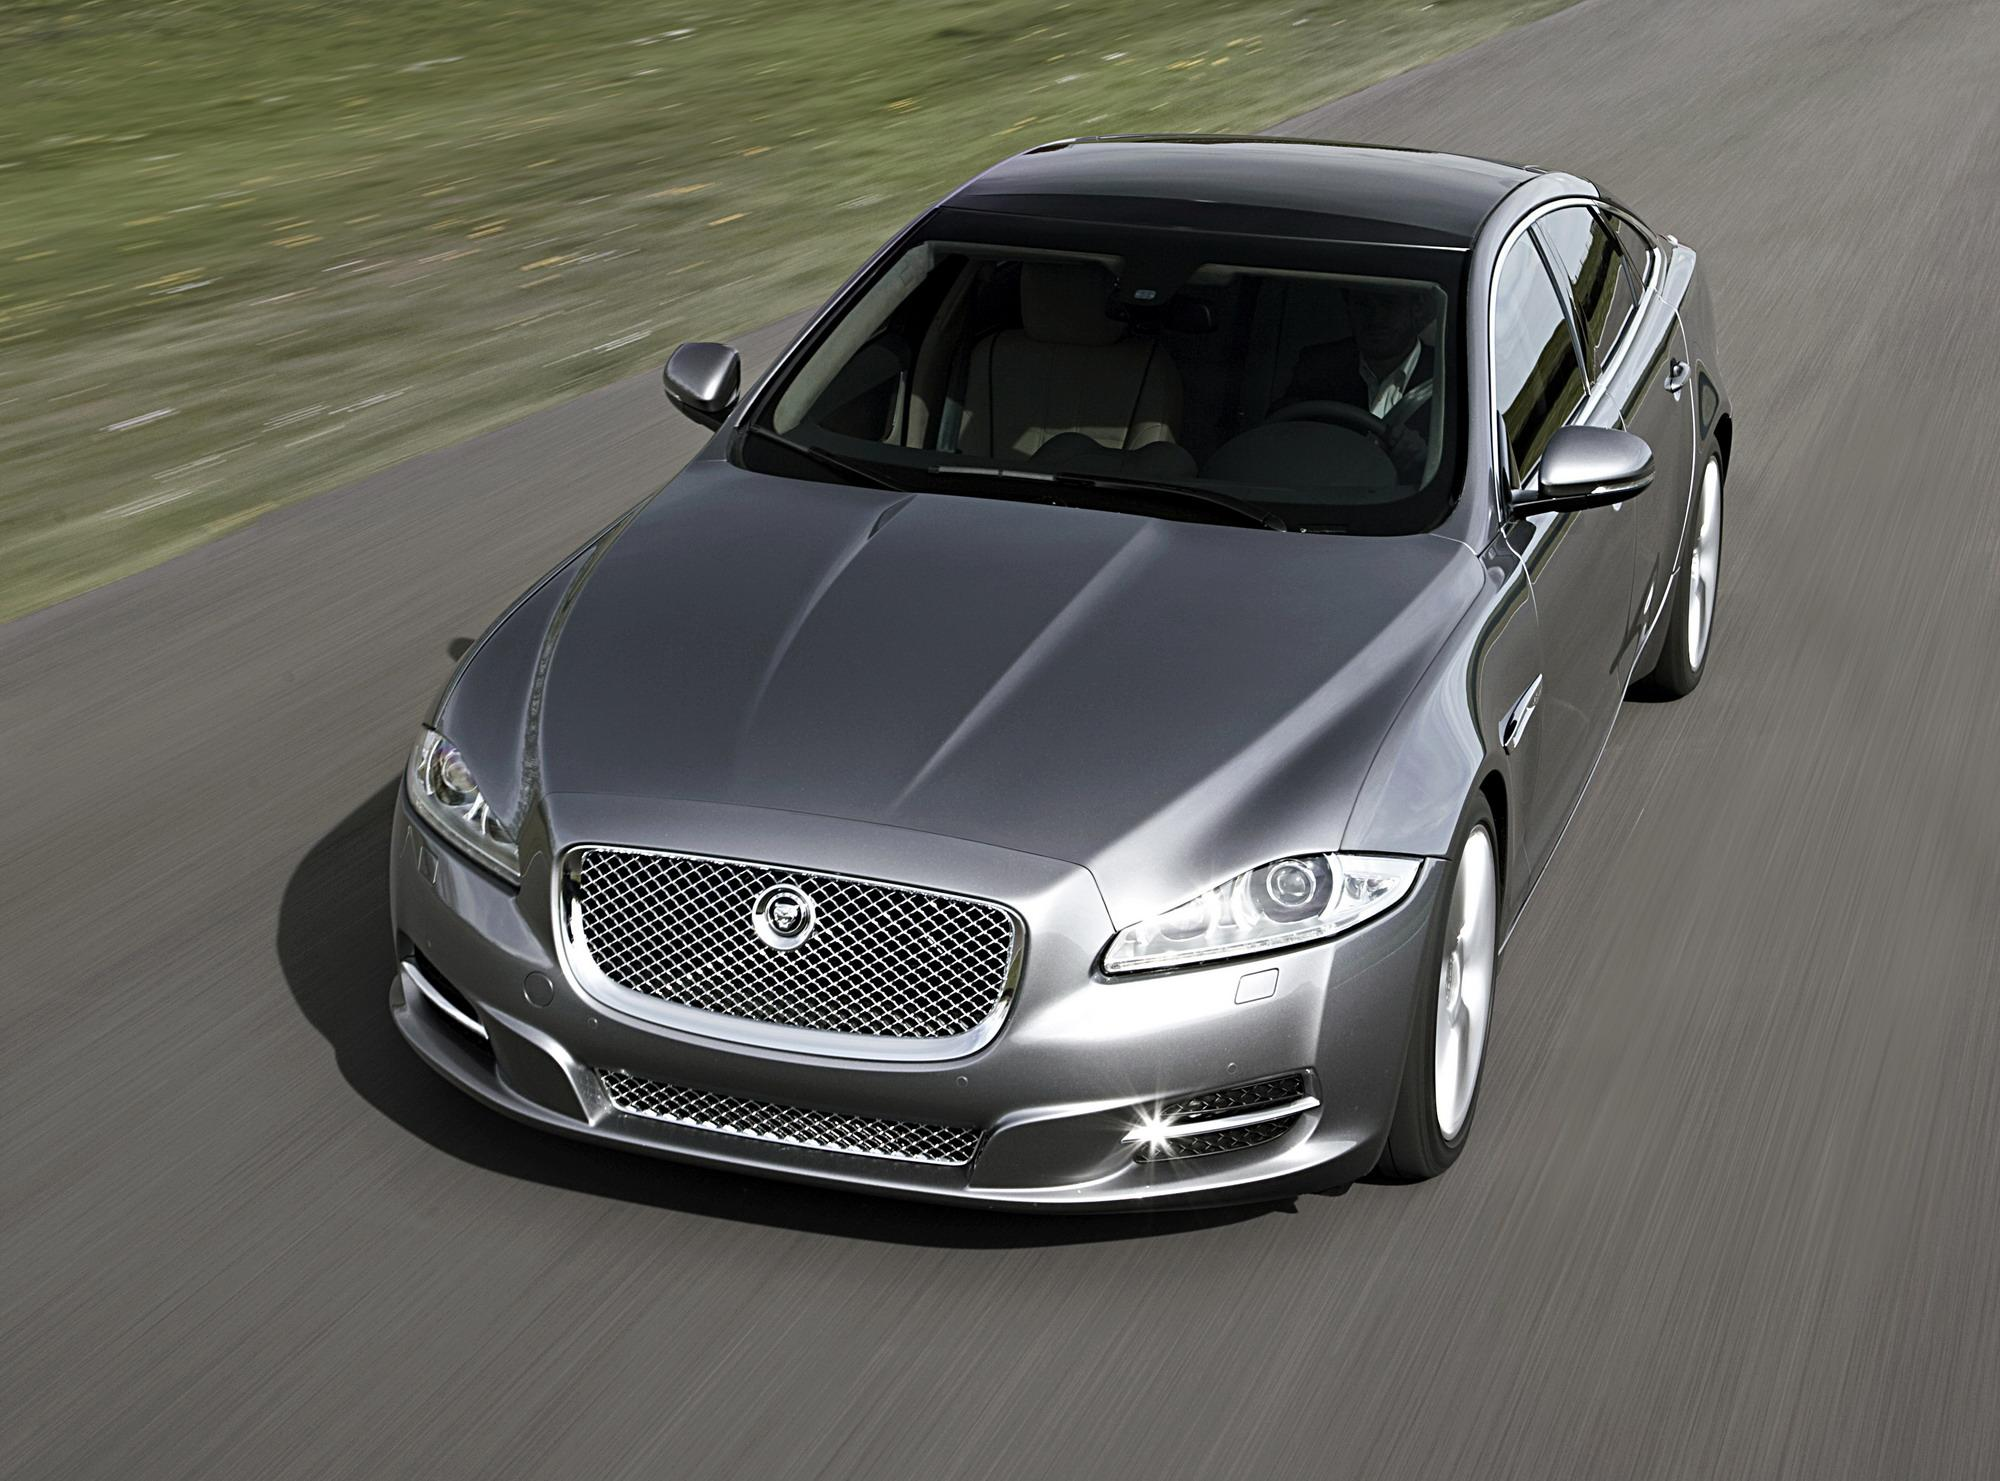 2010 jaguar xj prices announced news gallery top speed. Black Bedroom Furniture Sets. Home Design Ideas